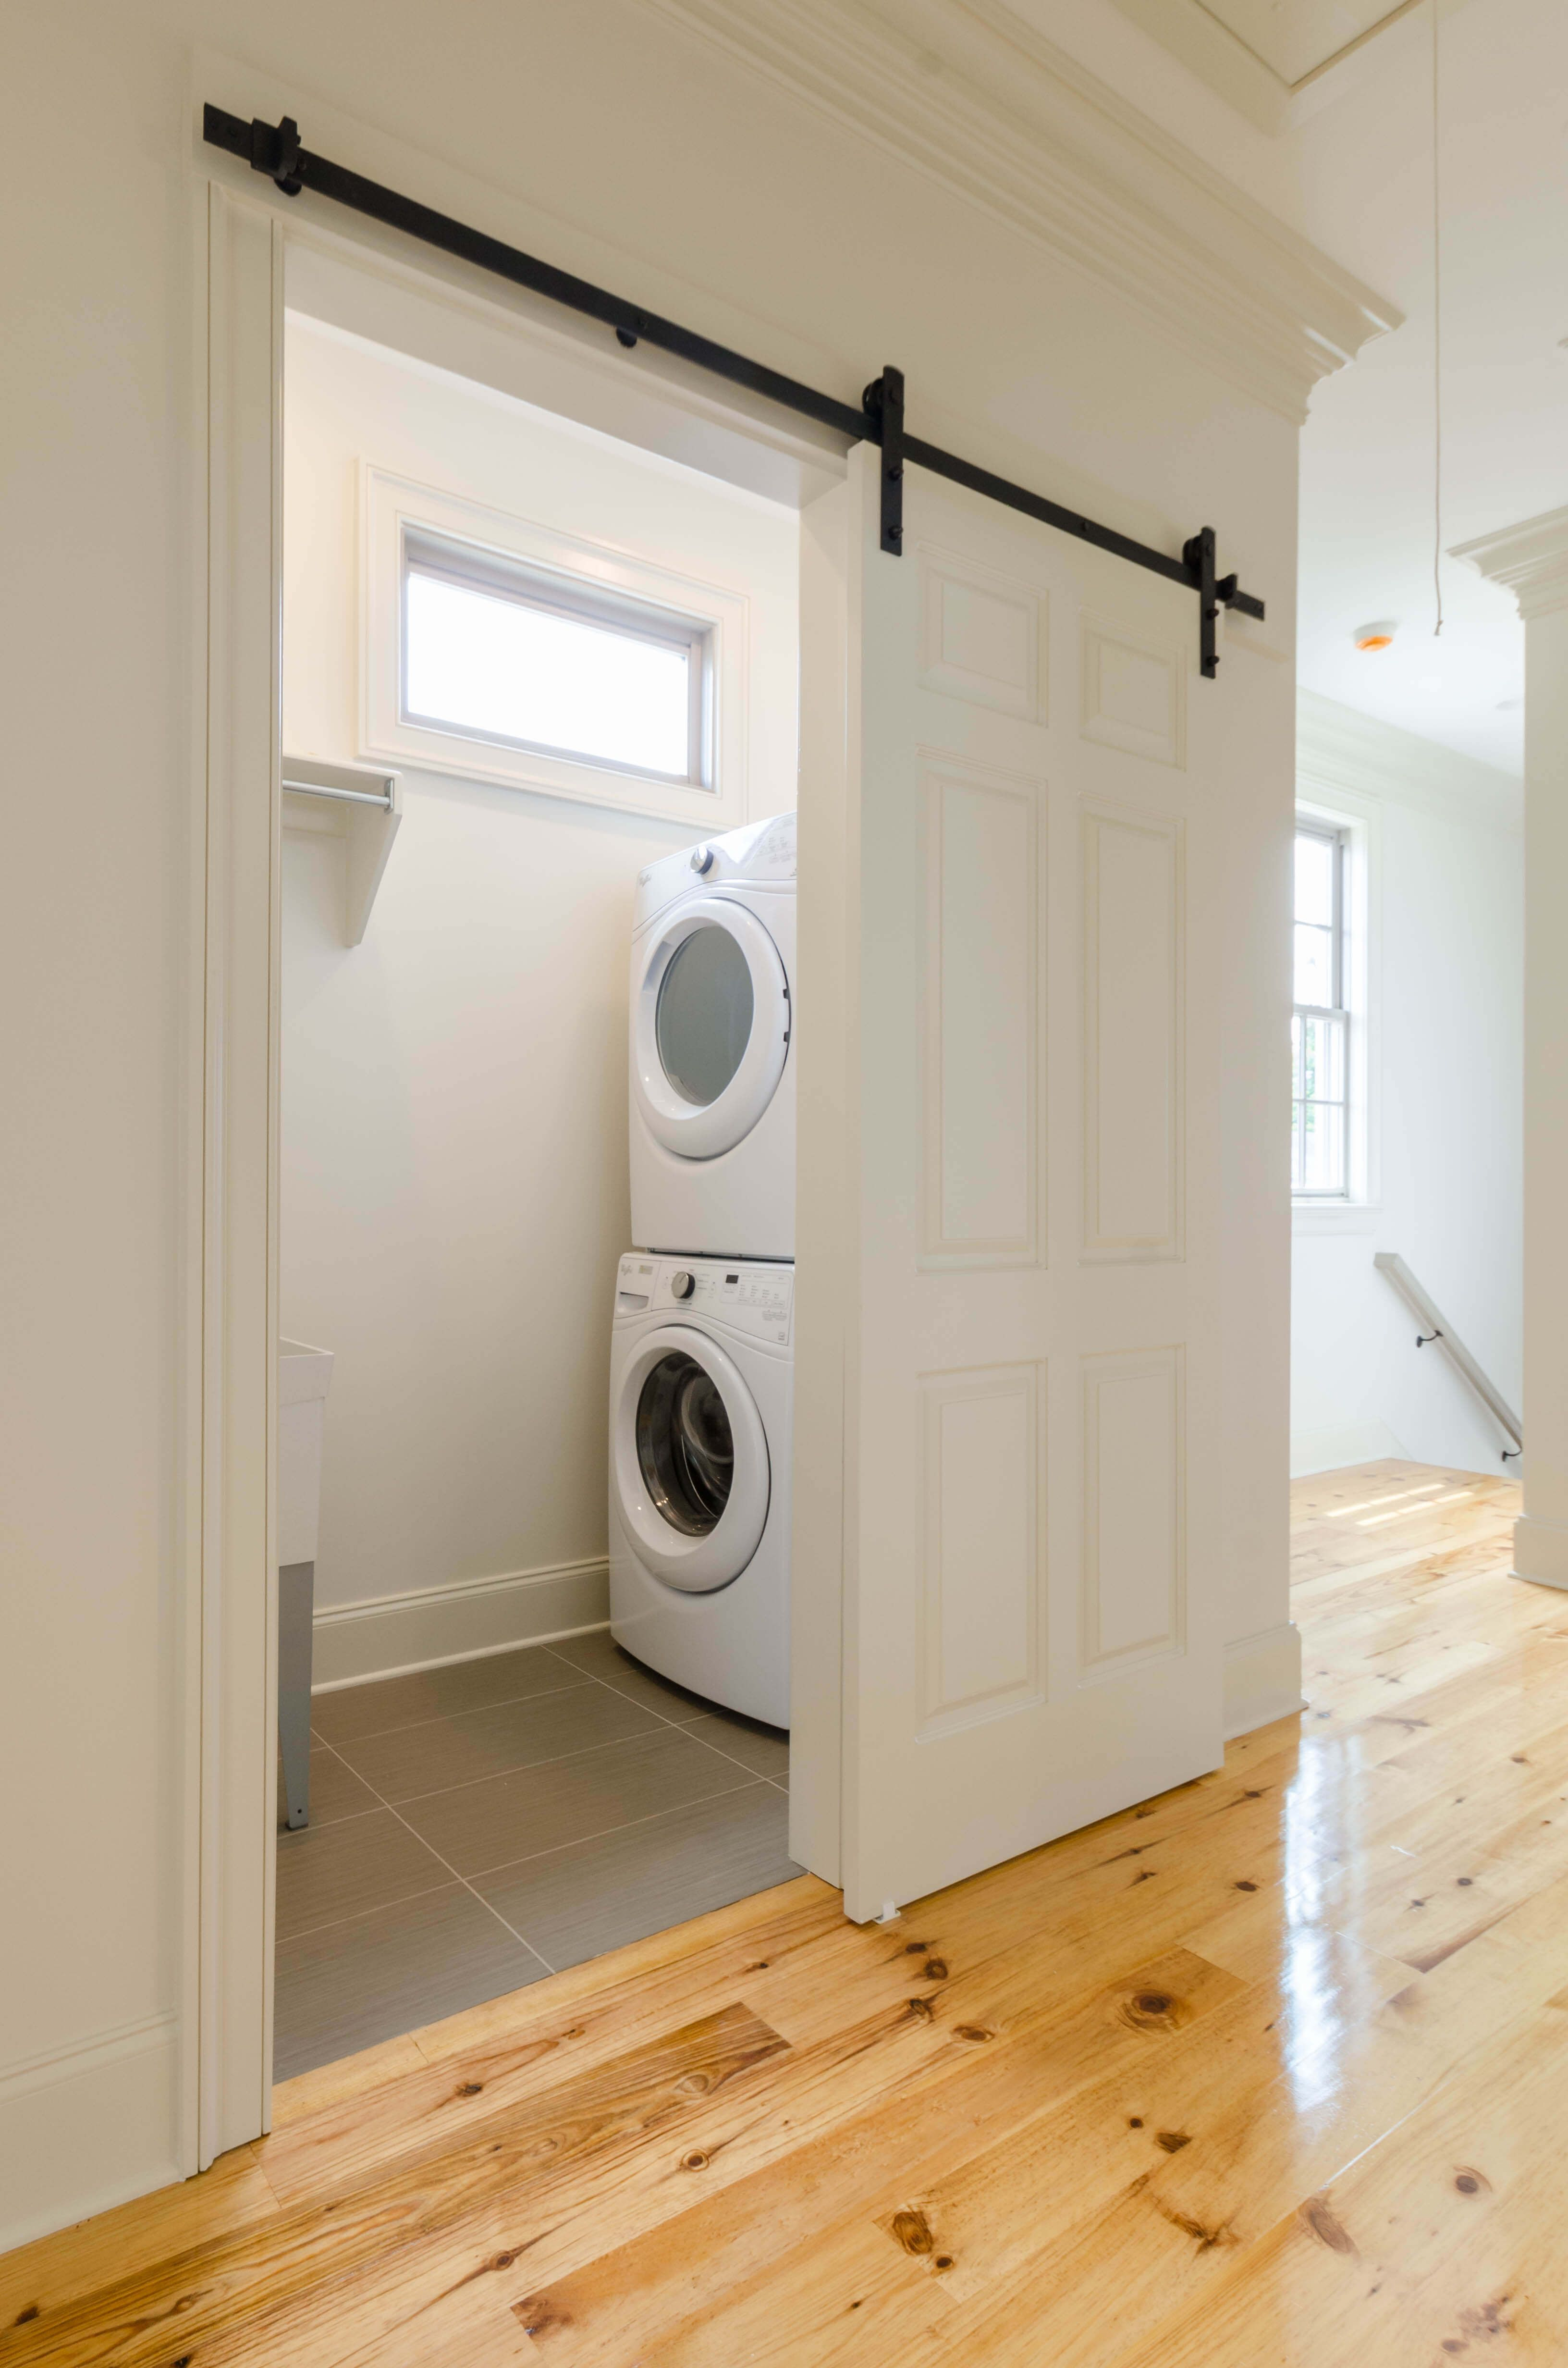 Interior Doors Wood And Moulded Varieties Laundry Room